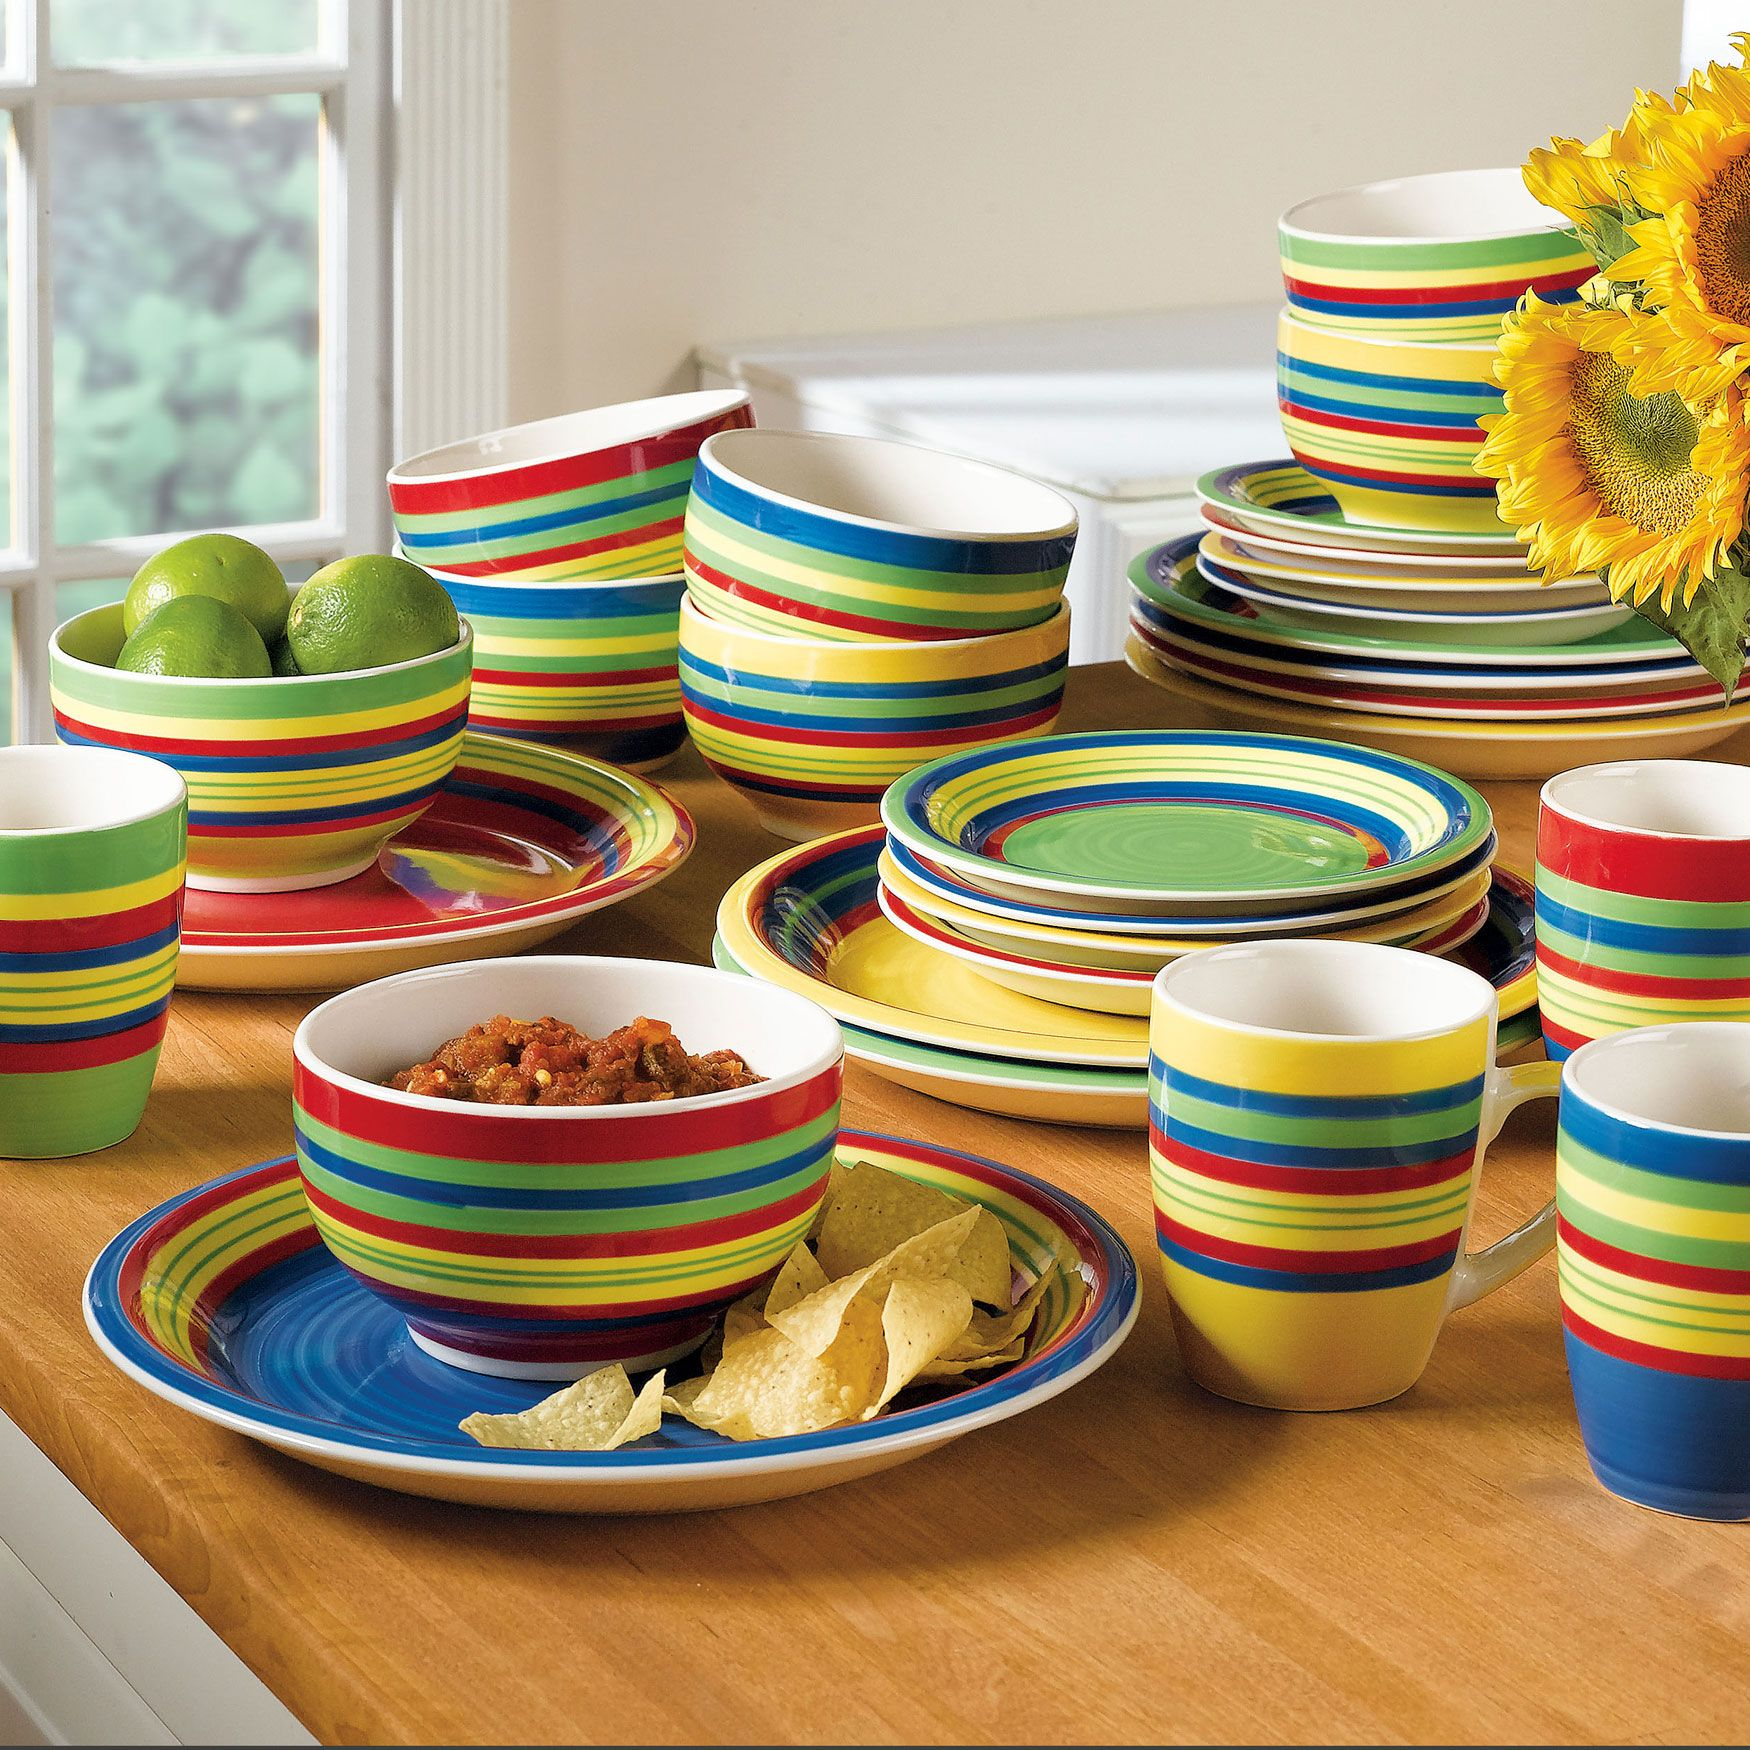 Santa Fe Hand-Painted Striped Stoneware Dinnerware & Santa Fe Hand-Painted Striped Stoneware Dinnerware | Kitchen Wares I ...